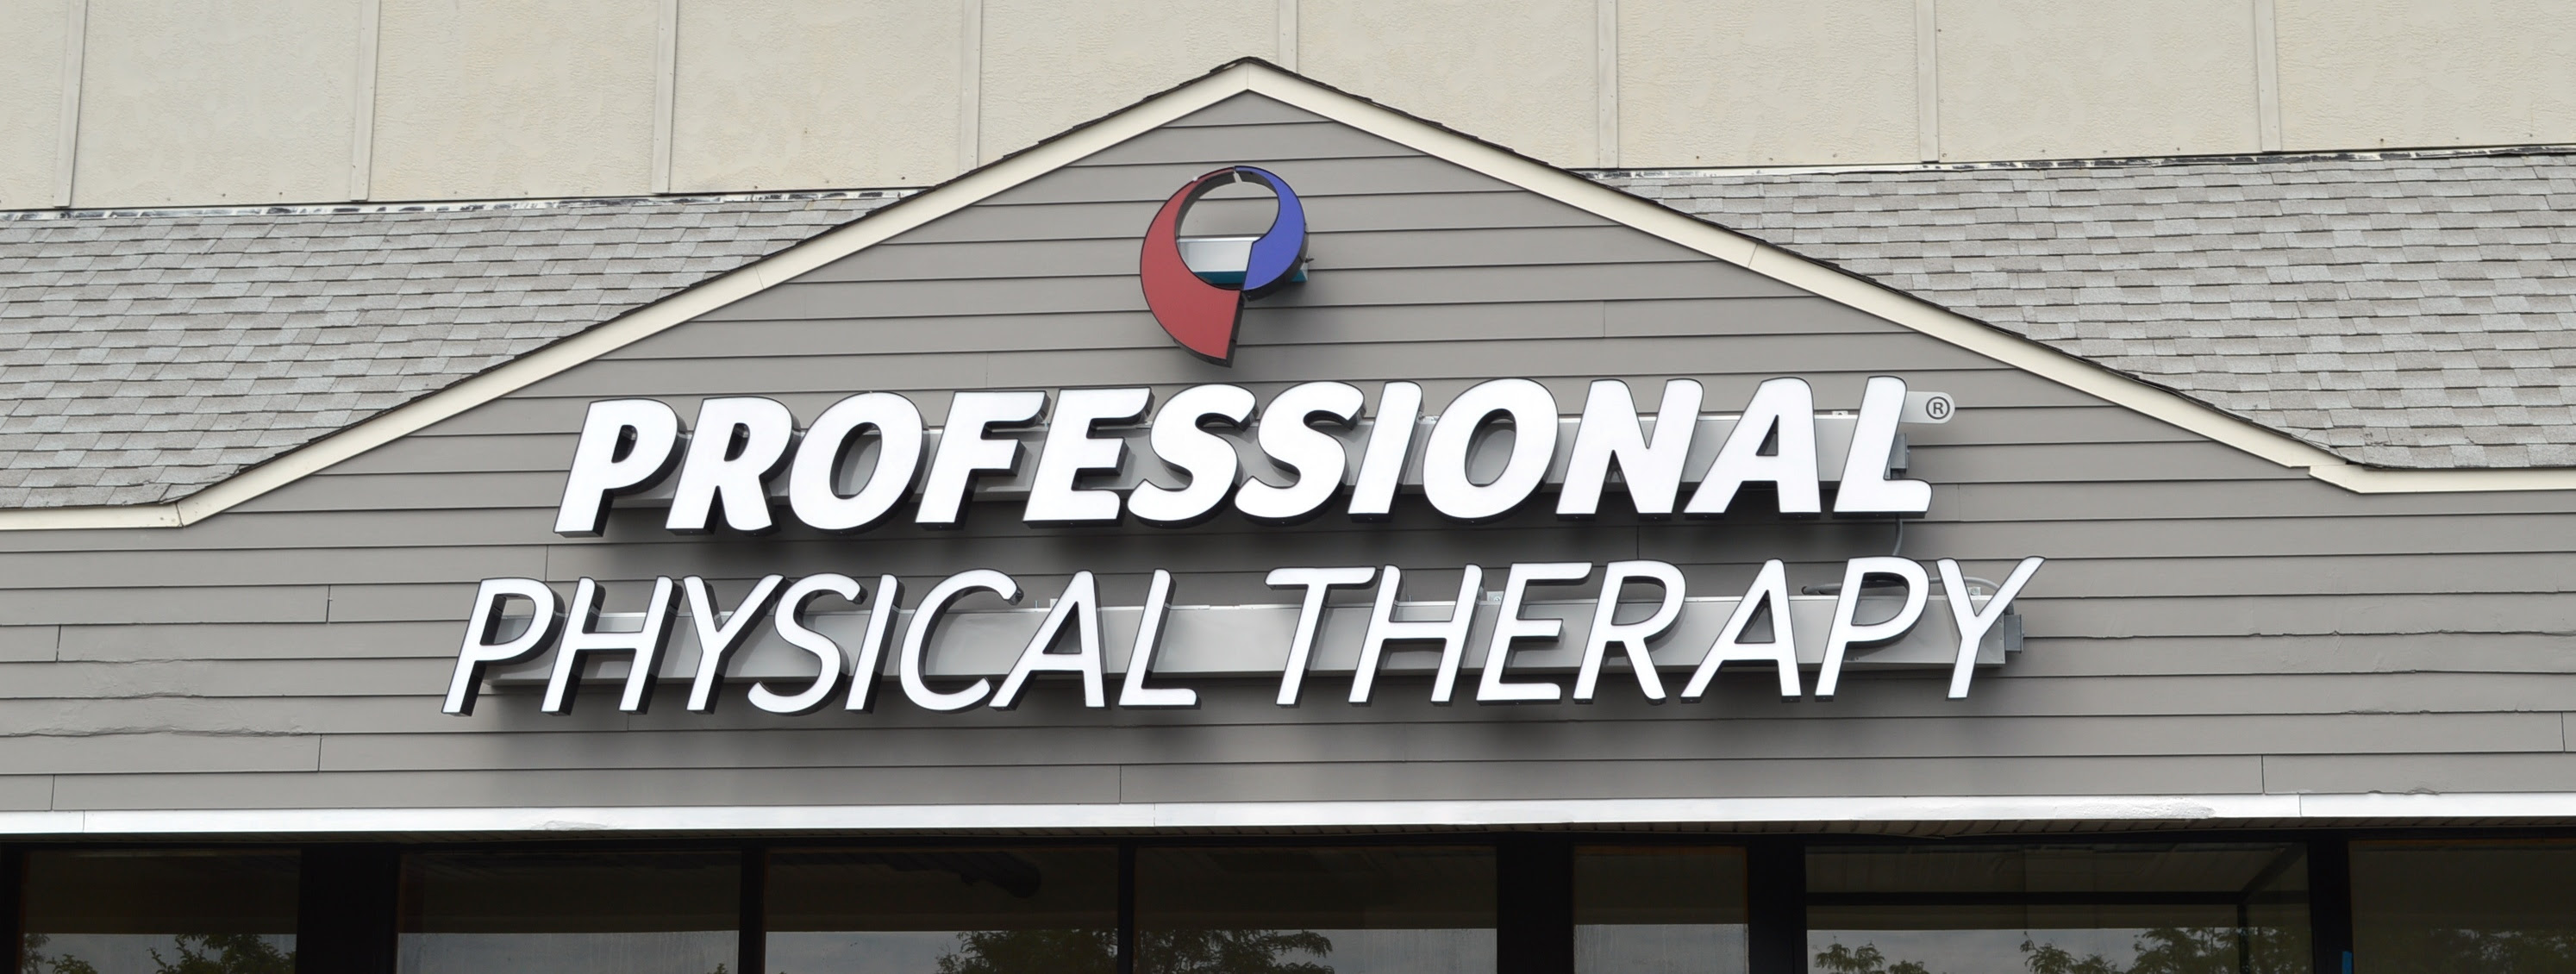 Professional Physical Therapy Launches Three New Locations ...